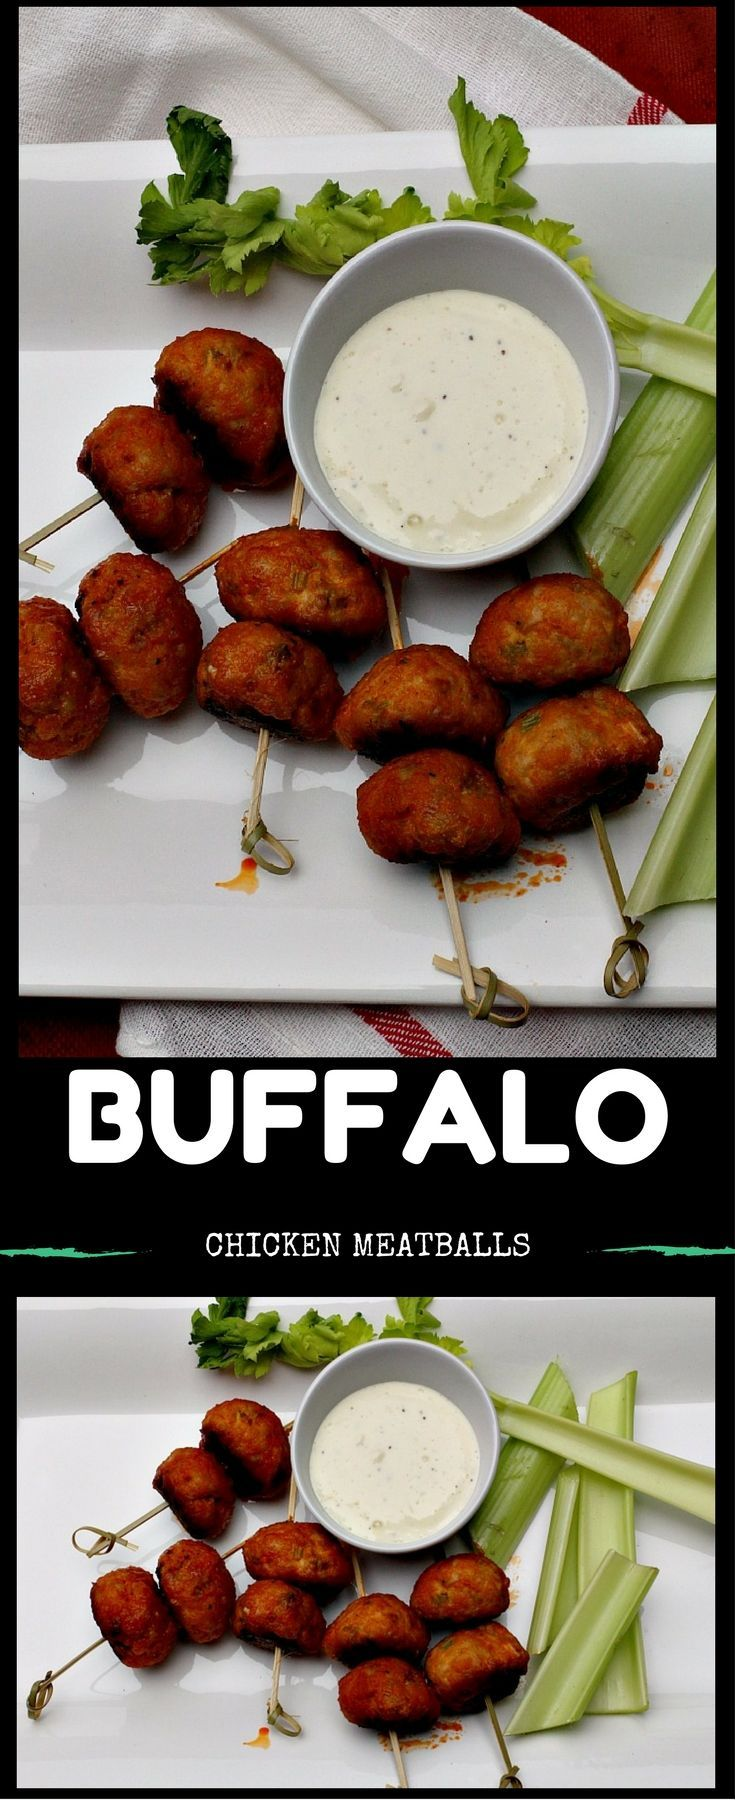 You can wear your white jeans with this one. Chicken wings without the mess. Chicken meatballs glazed in your favorite Buffalo Hot Wing Sauce. Easy chicken meatball recipe and fabulous chicken appetizer. Football and tailgating friendly.